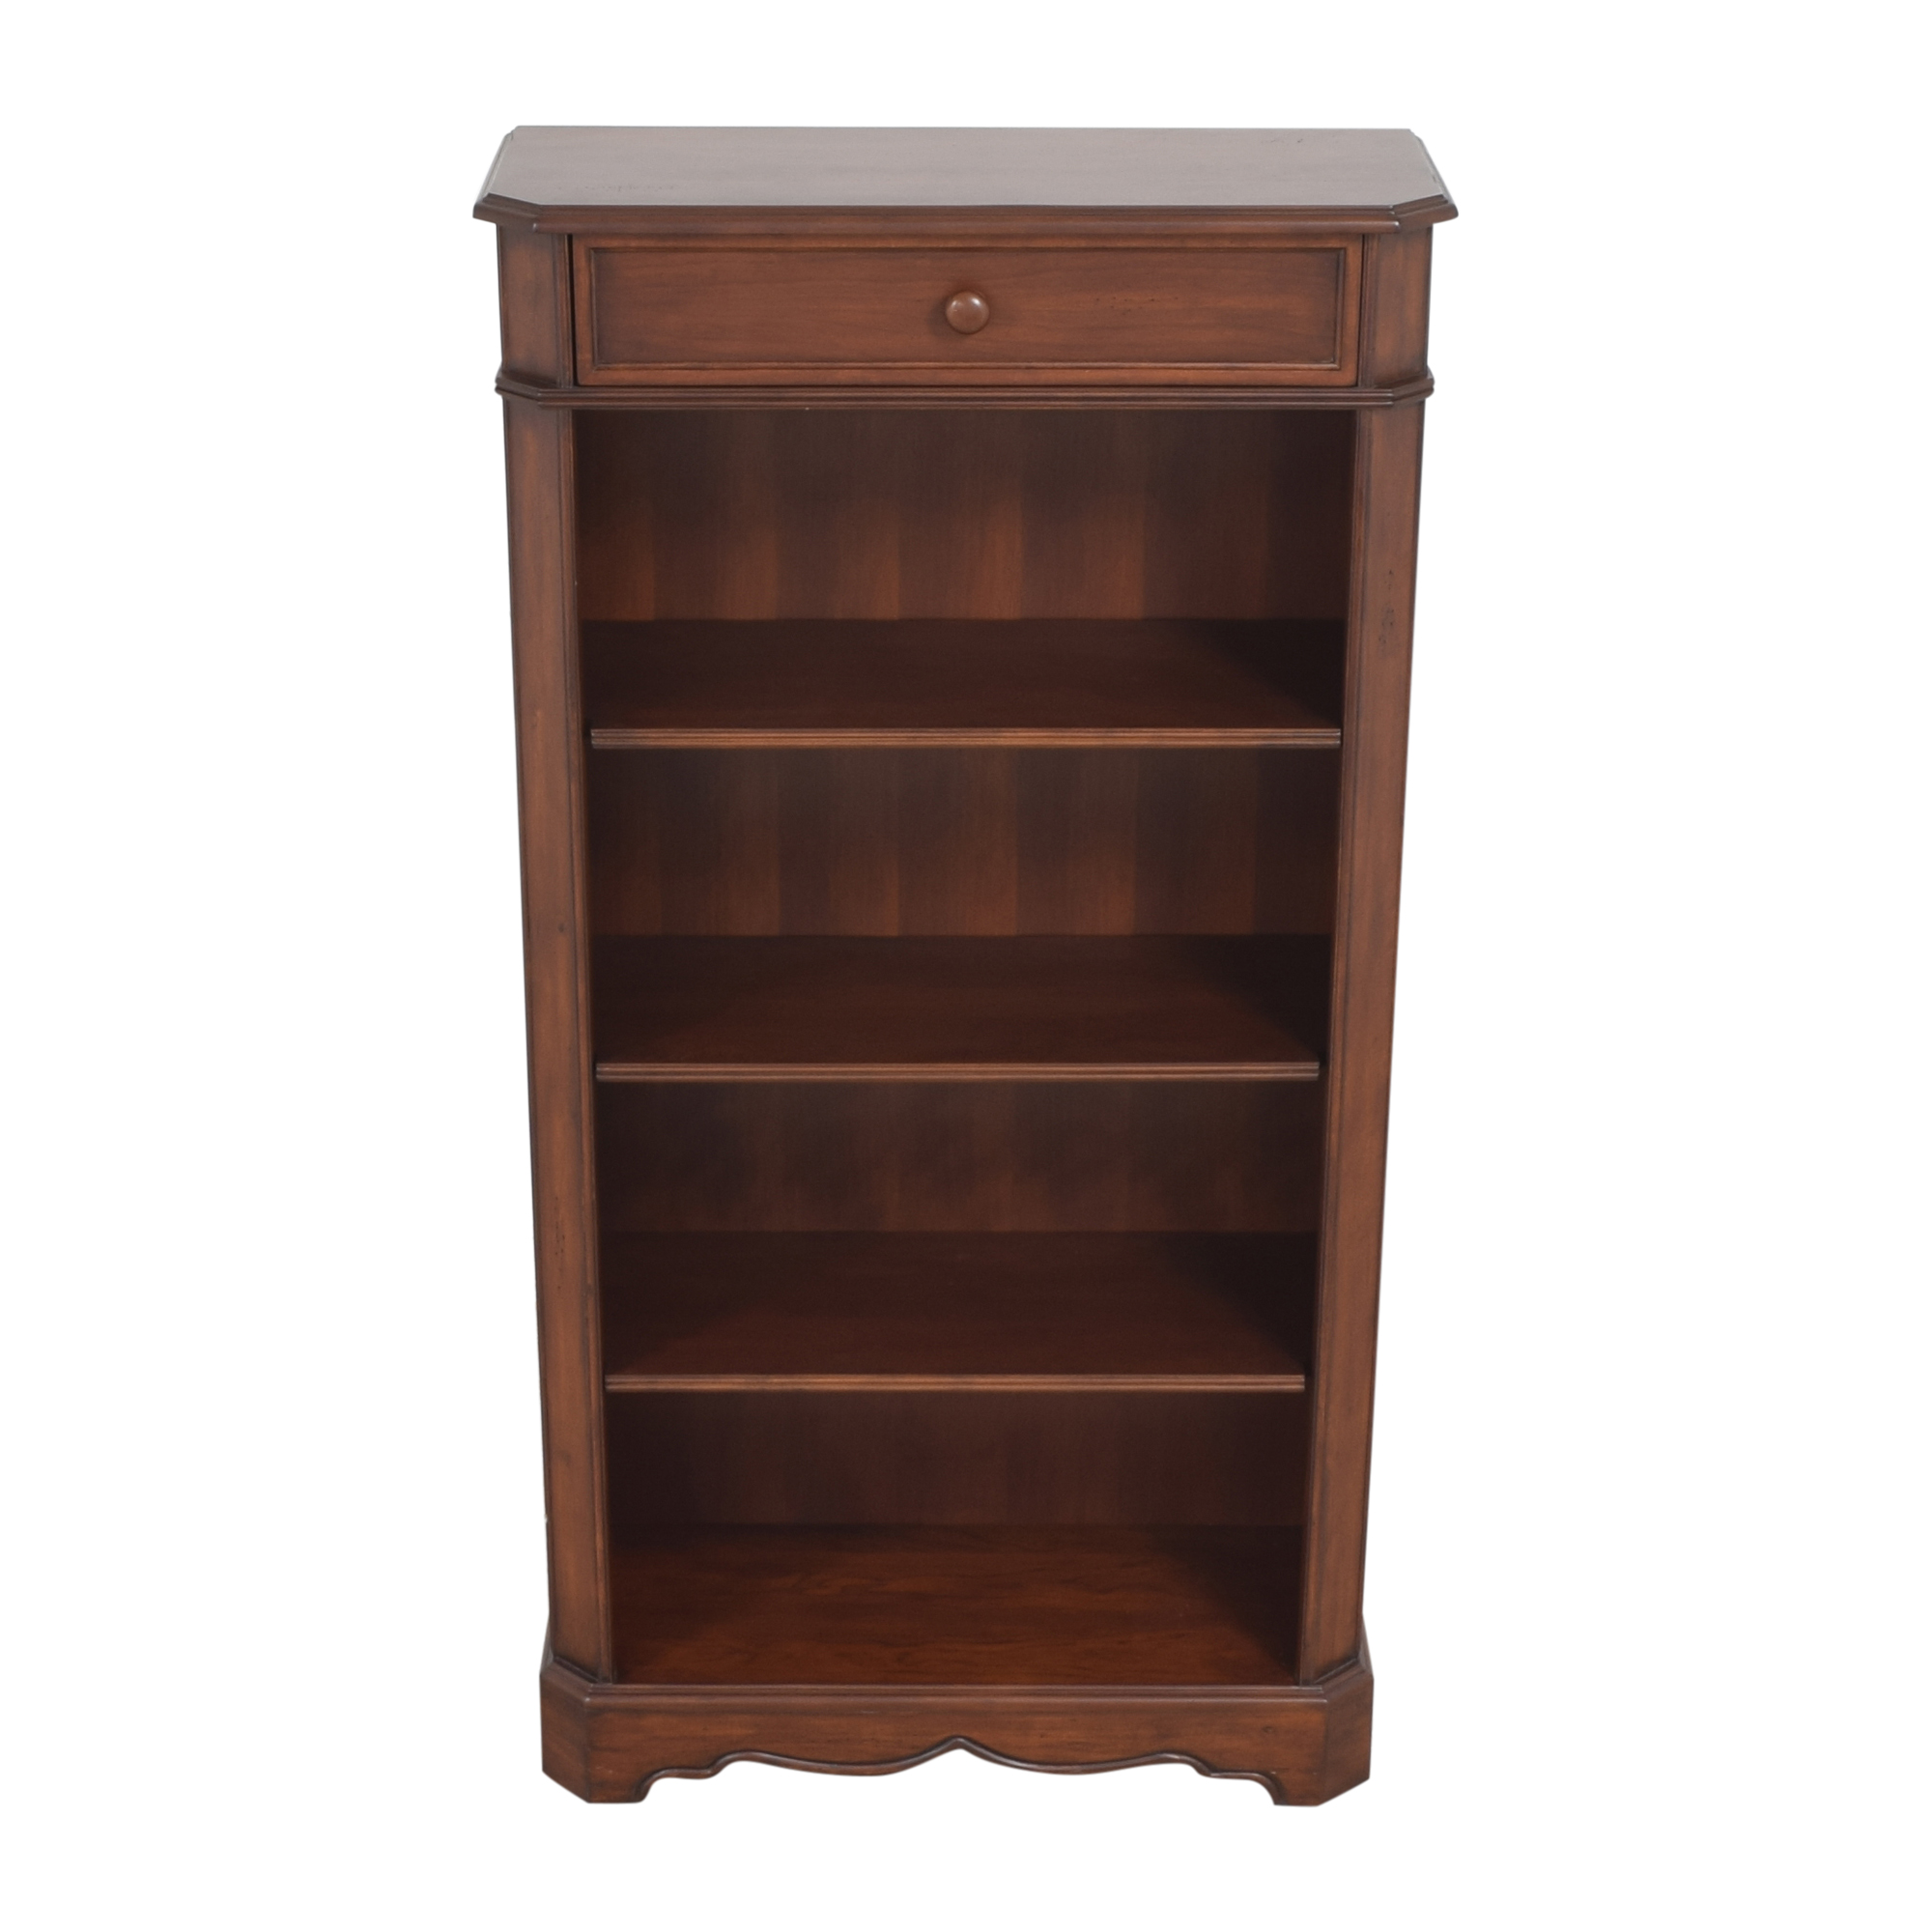 Single Drawer Bookcase / Bookcases & Shelving